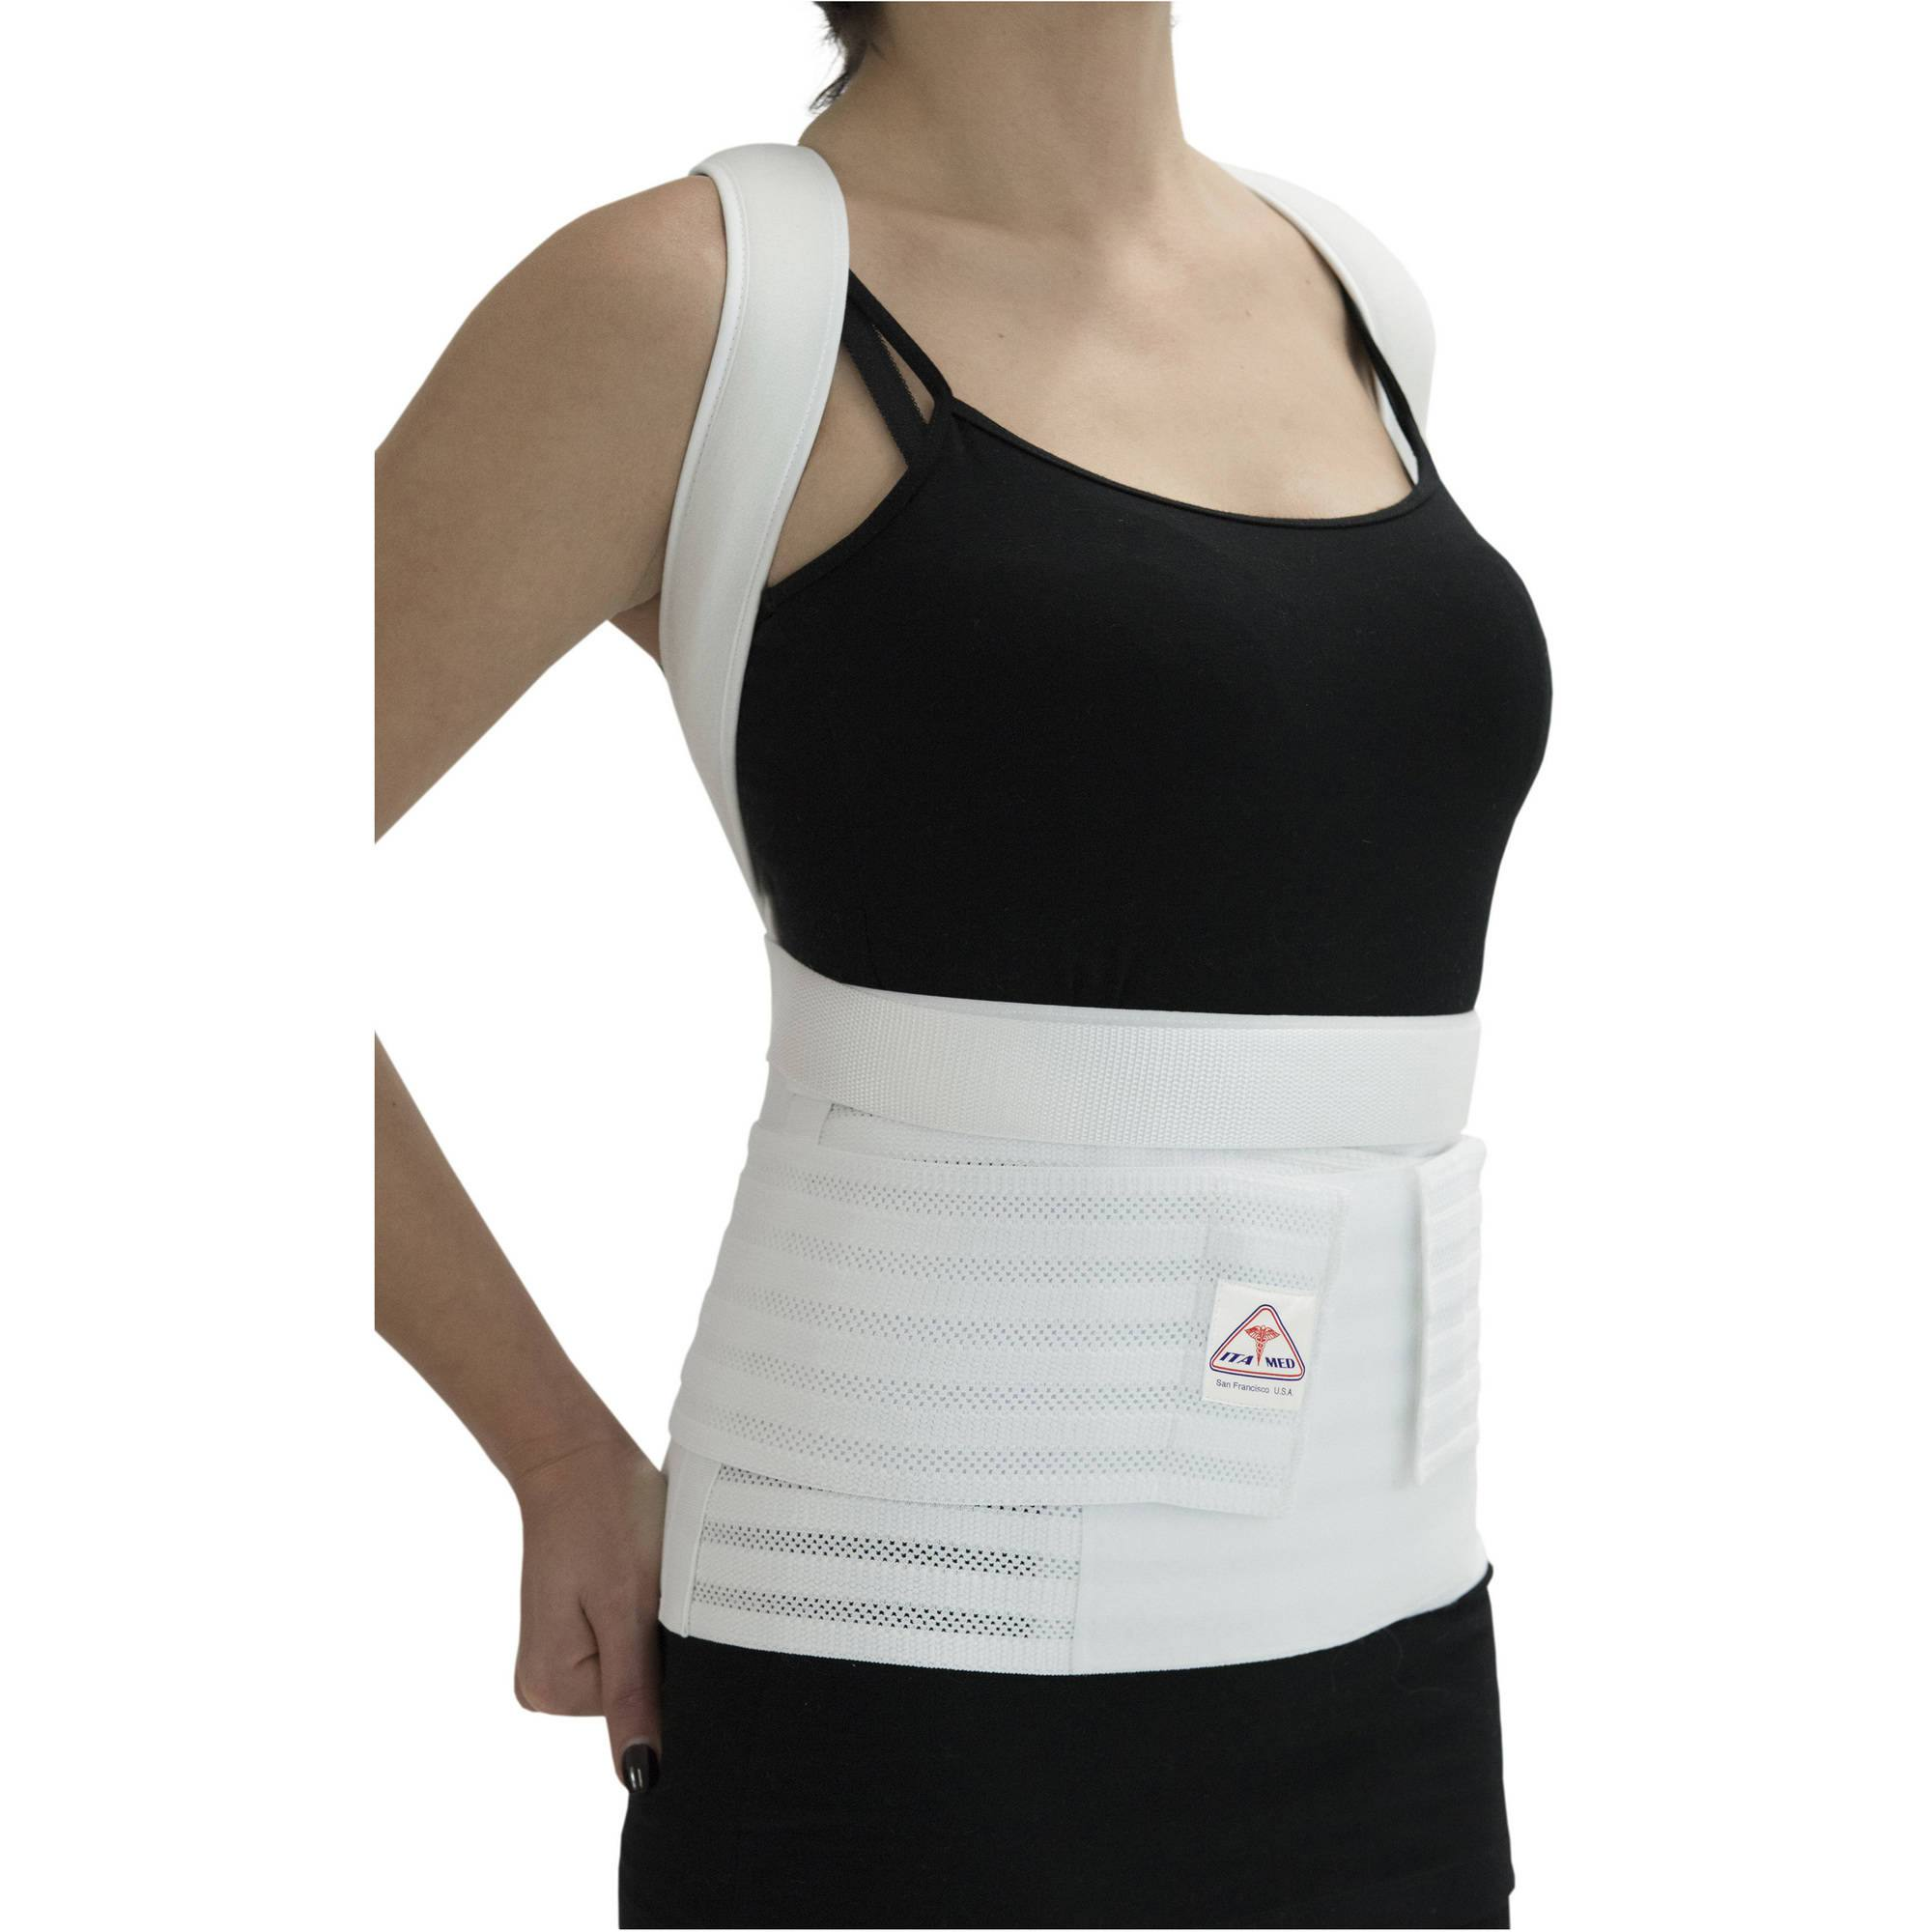 91522d8a77 Best for Women  ITA-MED Posture Corrector for Women